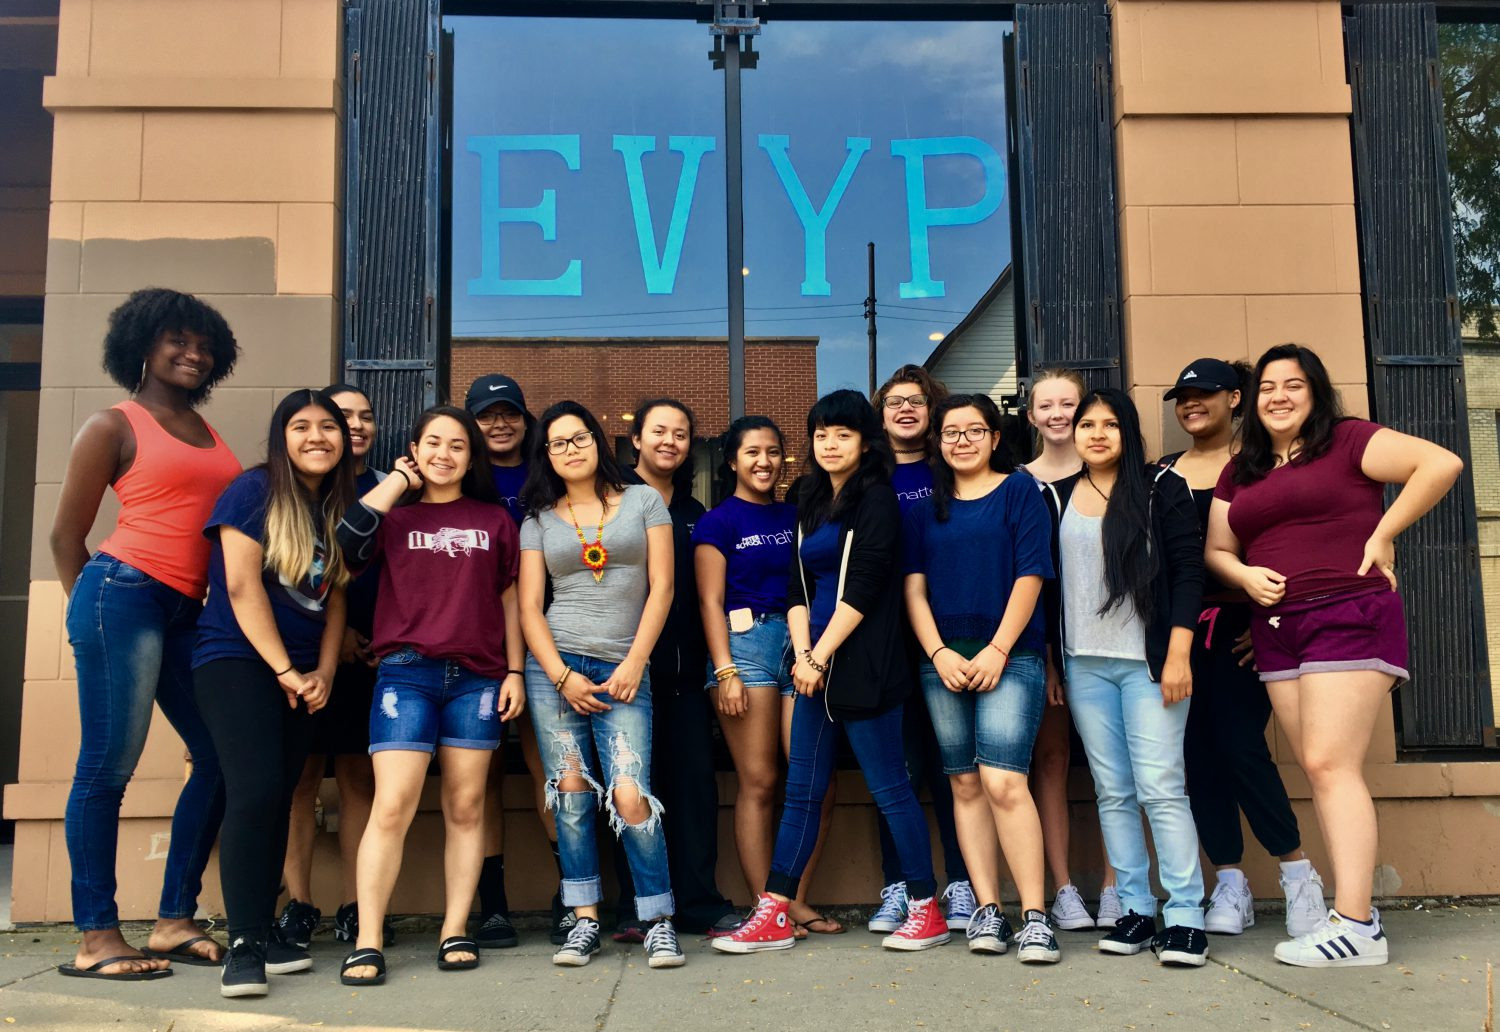 East Village Youth Program